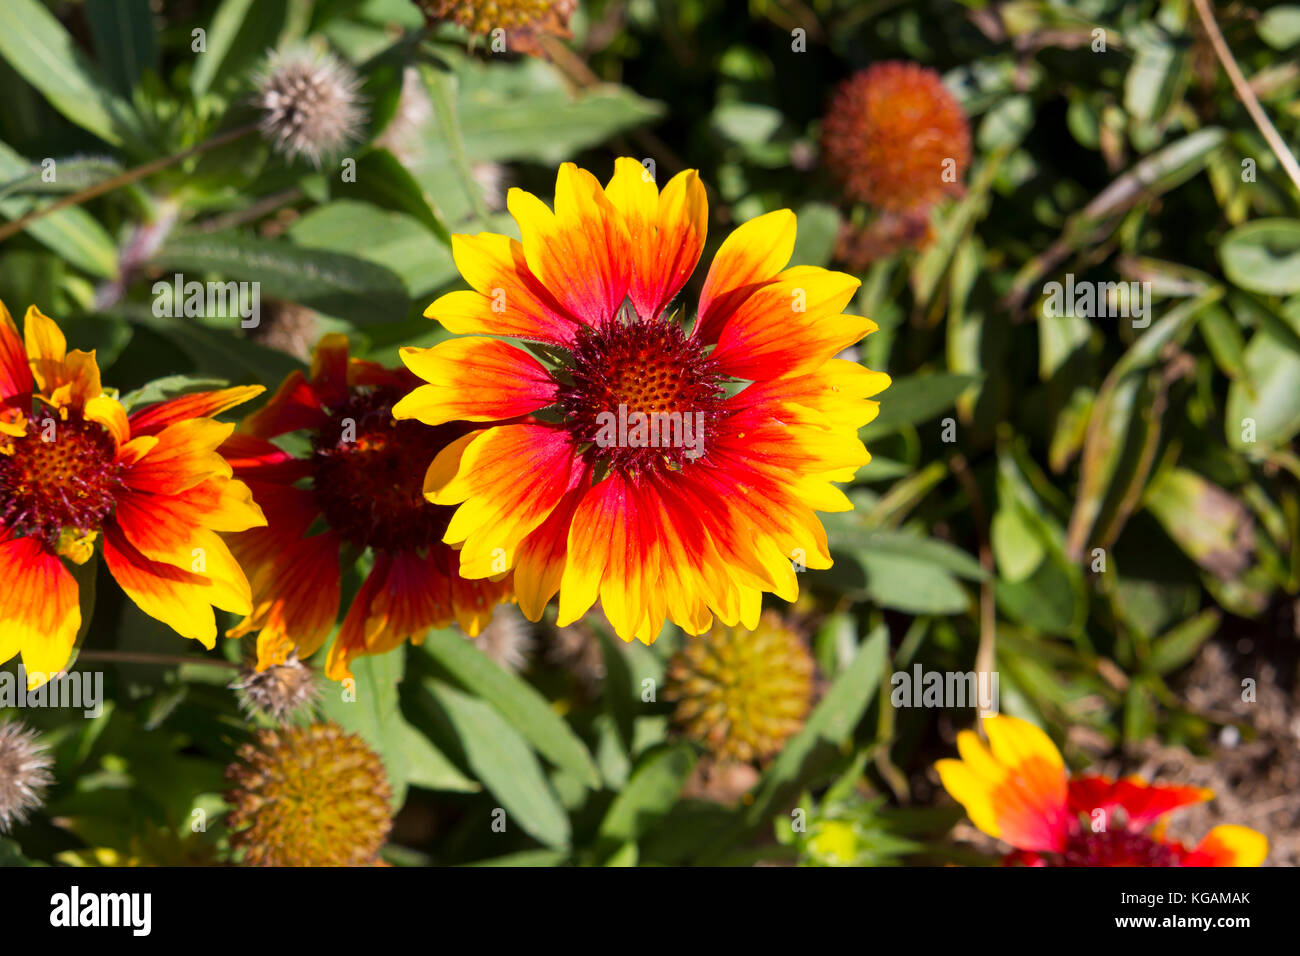 Bright yellow and red flowers of Gaillardia Asteracea sunflower ...